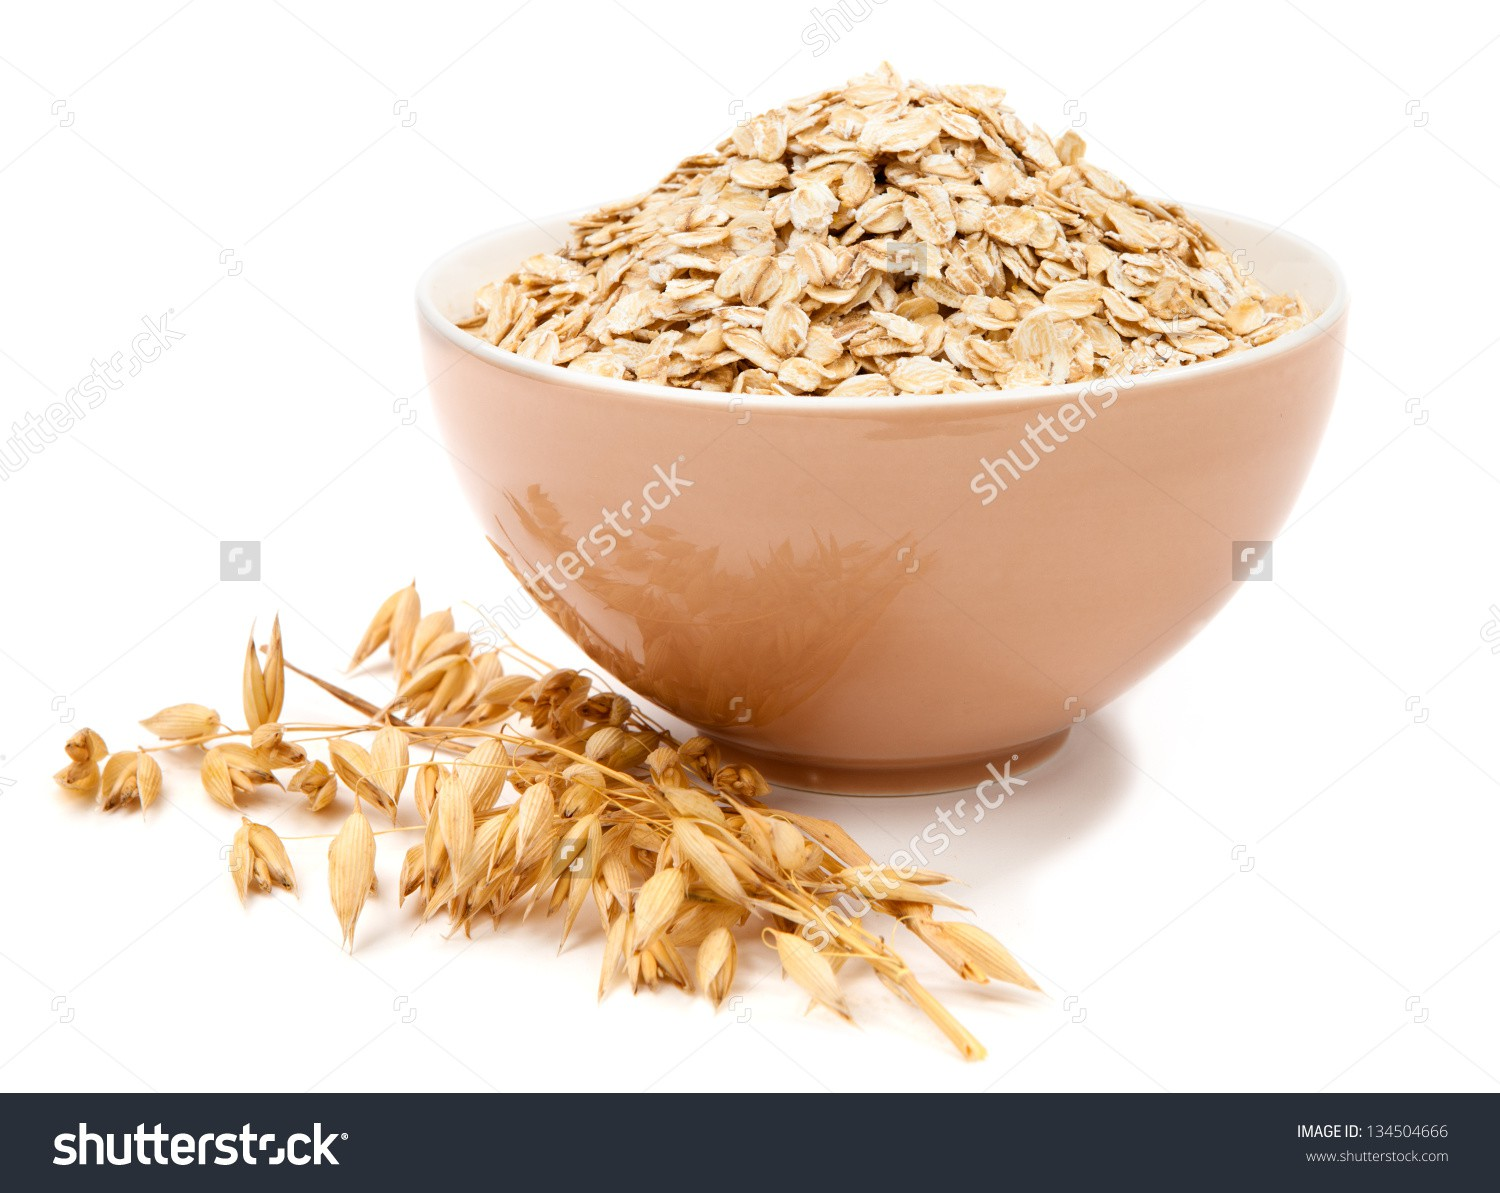 Design for organic semolina and oat flakes